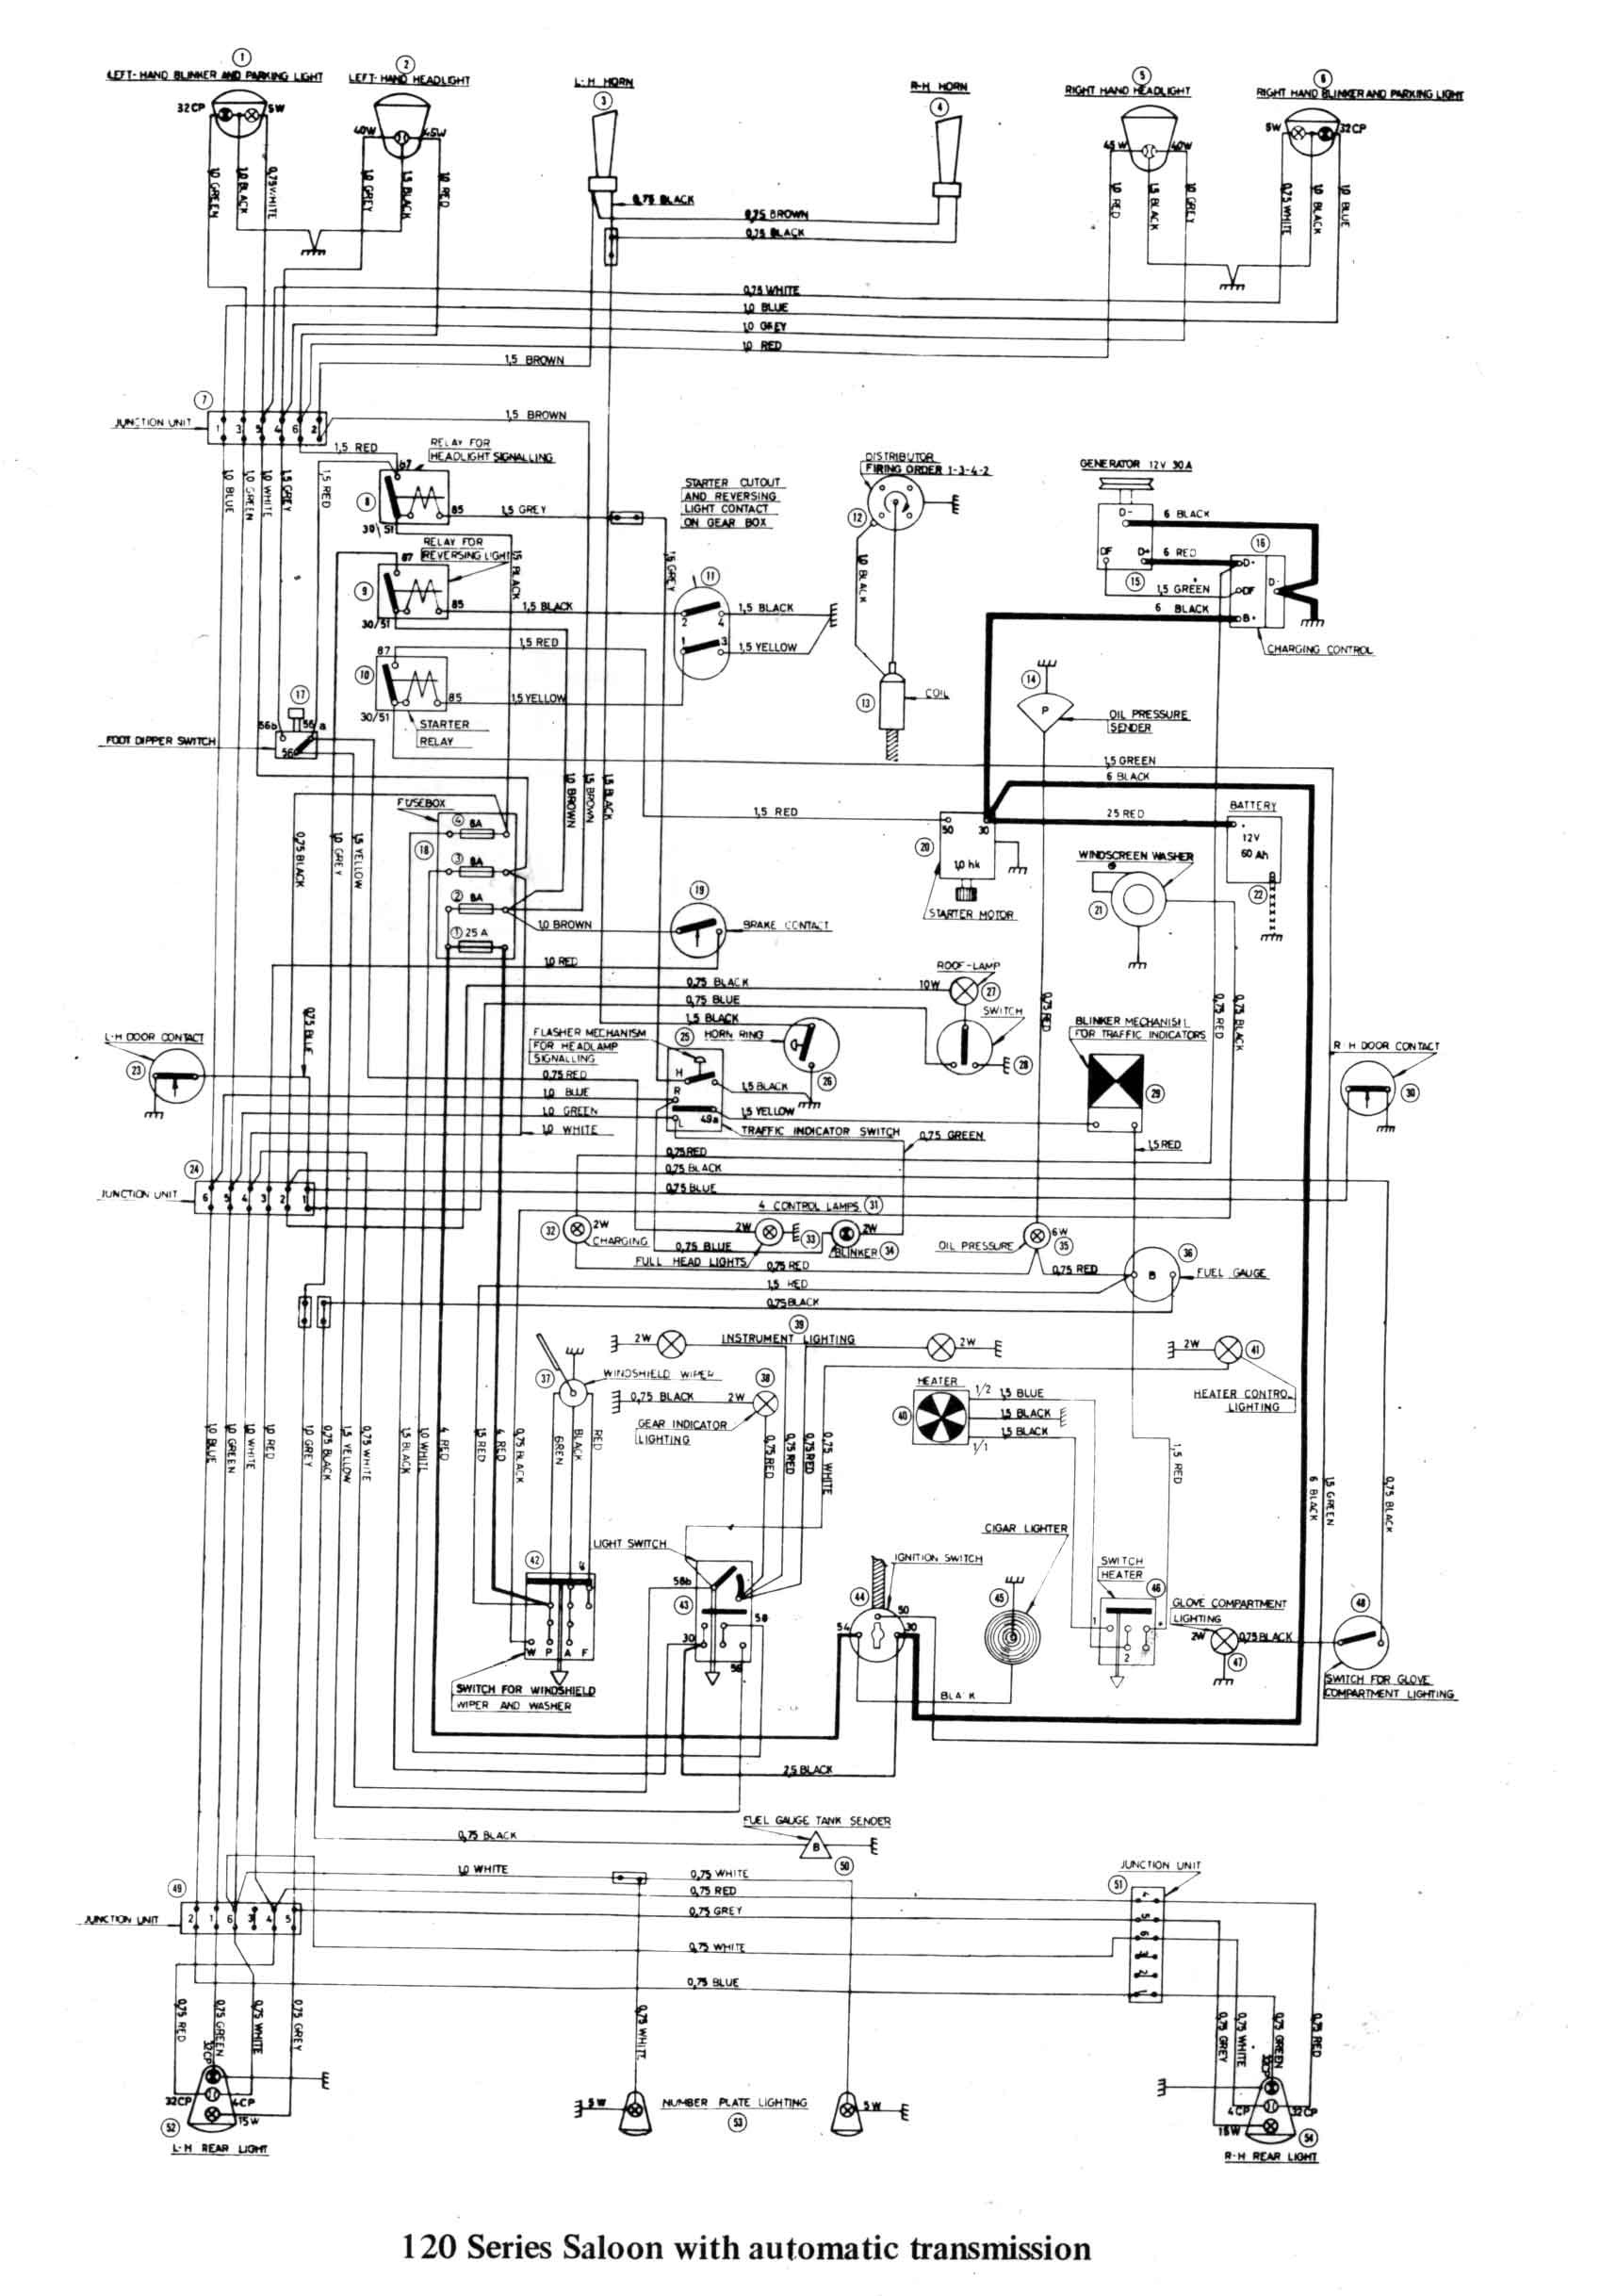 diagram] volvo v70 wiring diagram 1999 full version hd quality diagram 1999  - tvmountwiringh.varosrl.it  tvmountwiringh.varosrl.it